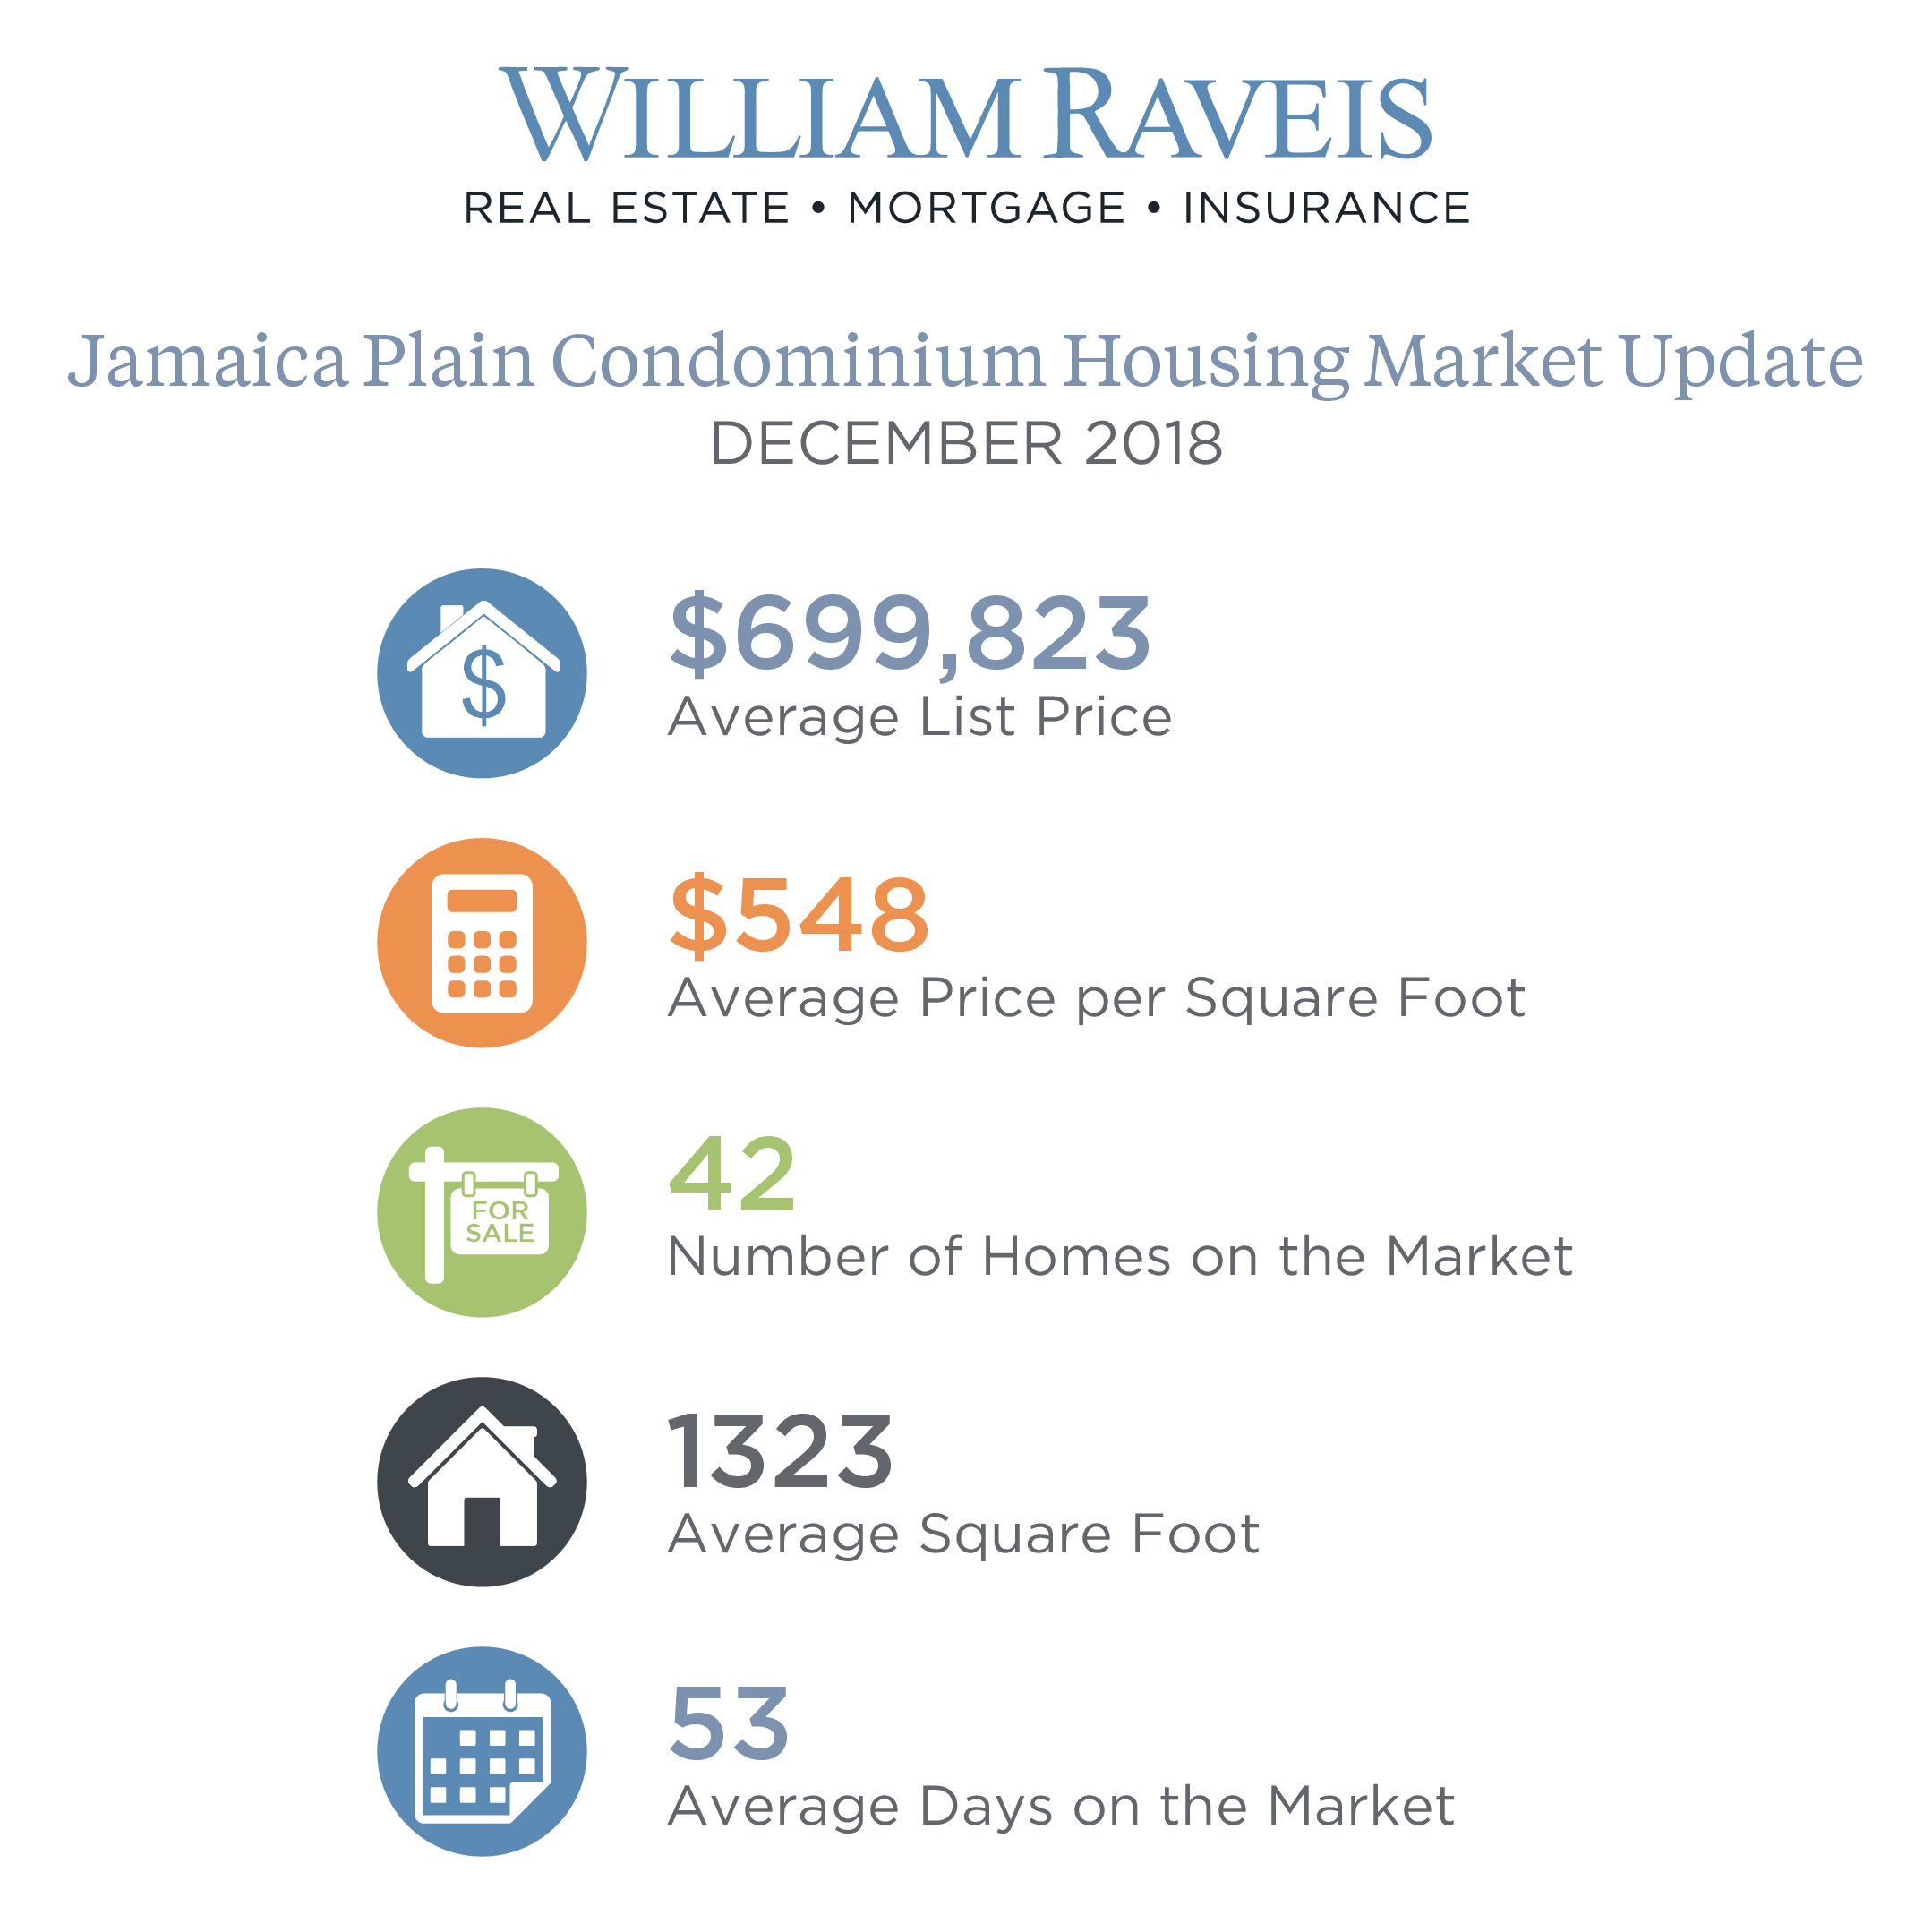 Jamaica Plain Condominium Housing Market Update Dec. 2018